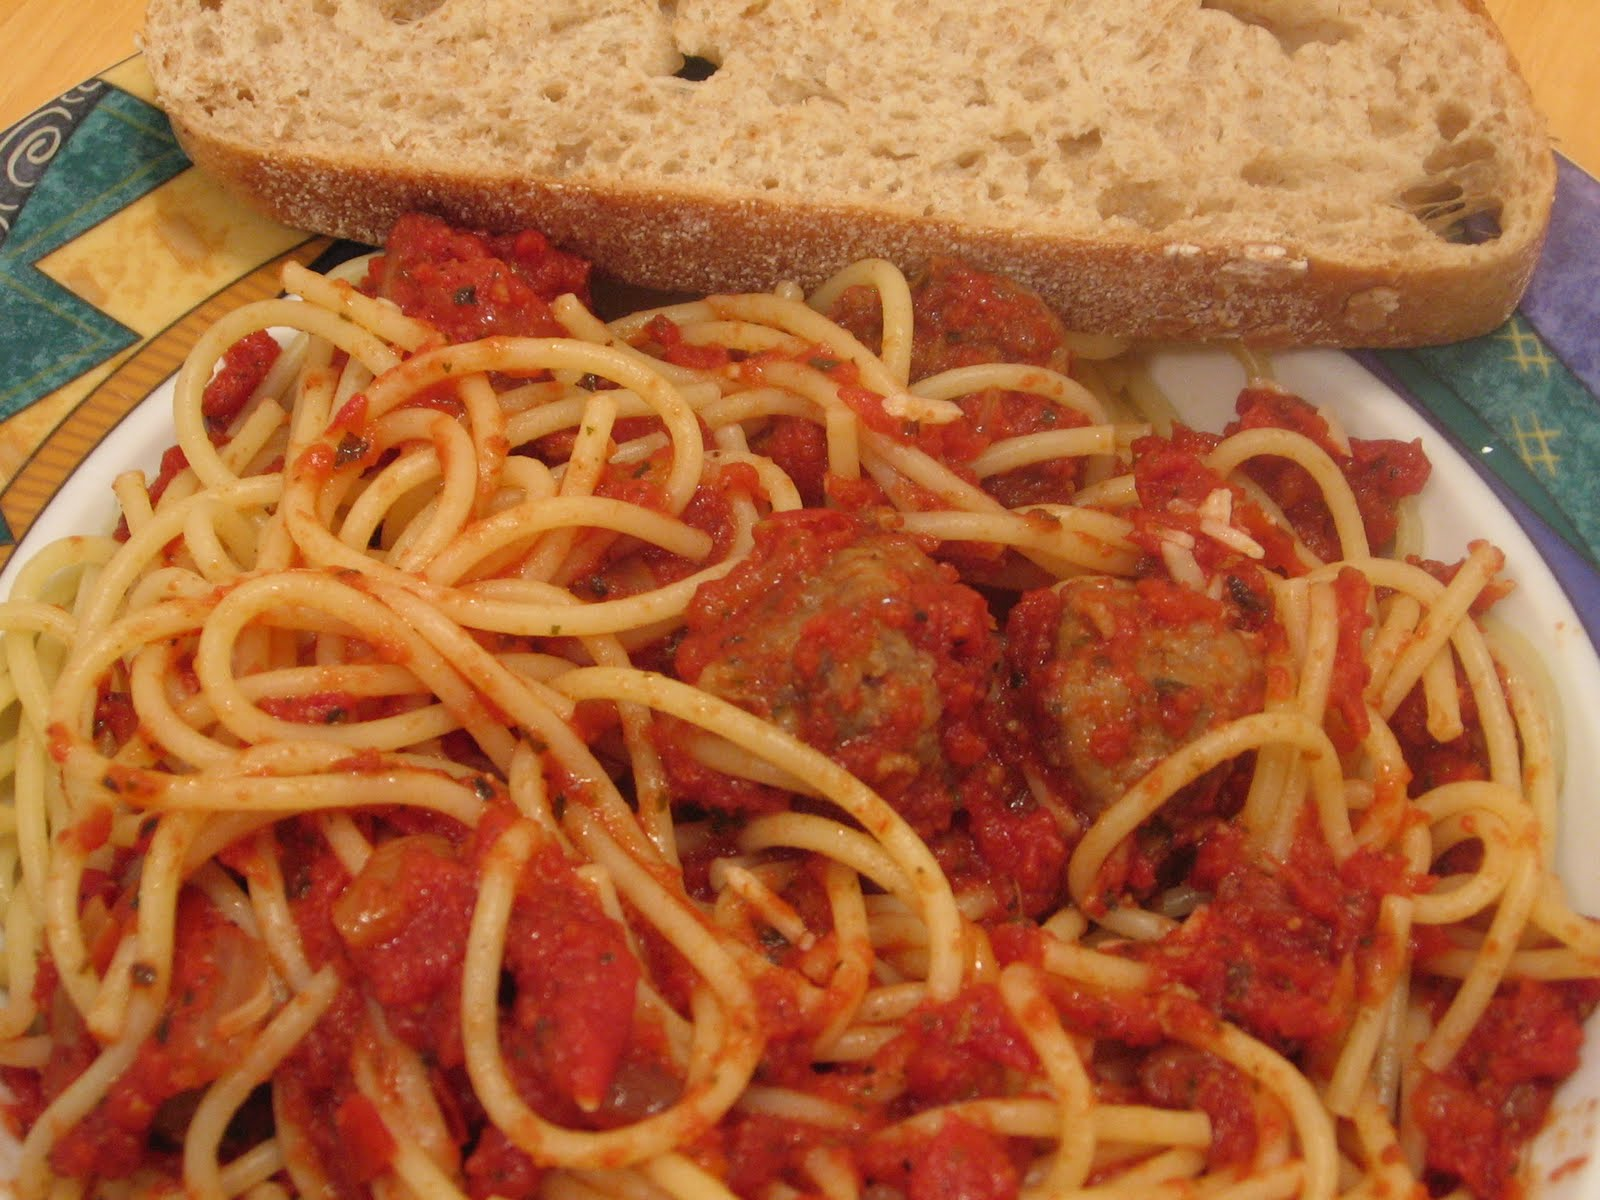 Jenn's Food Journey: Spaghetti with Hot Italian Sausage